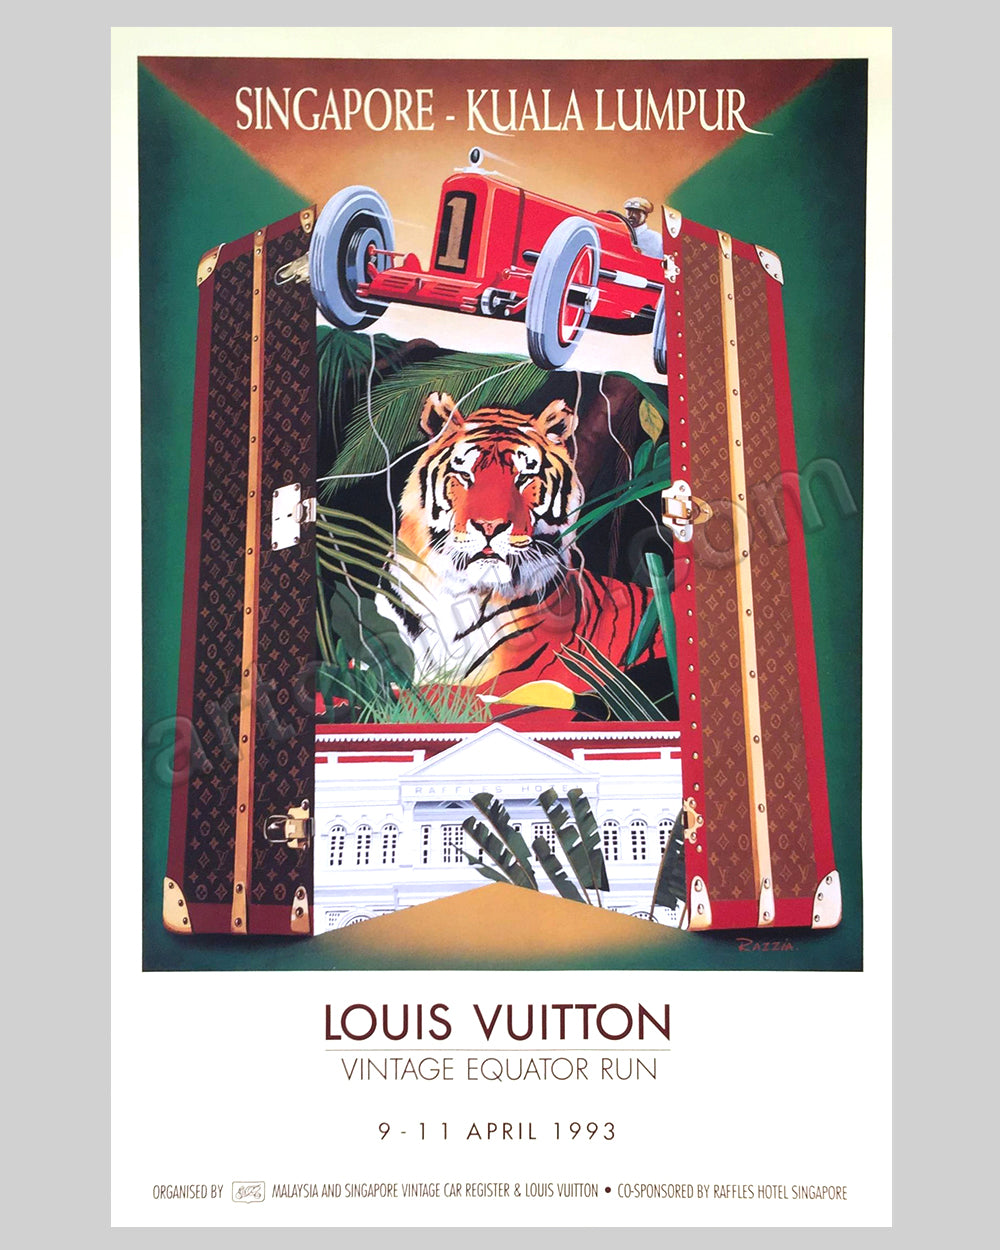 Louis Vuitton Vintage Equator Run original event poster by Razzia